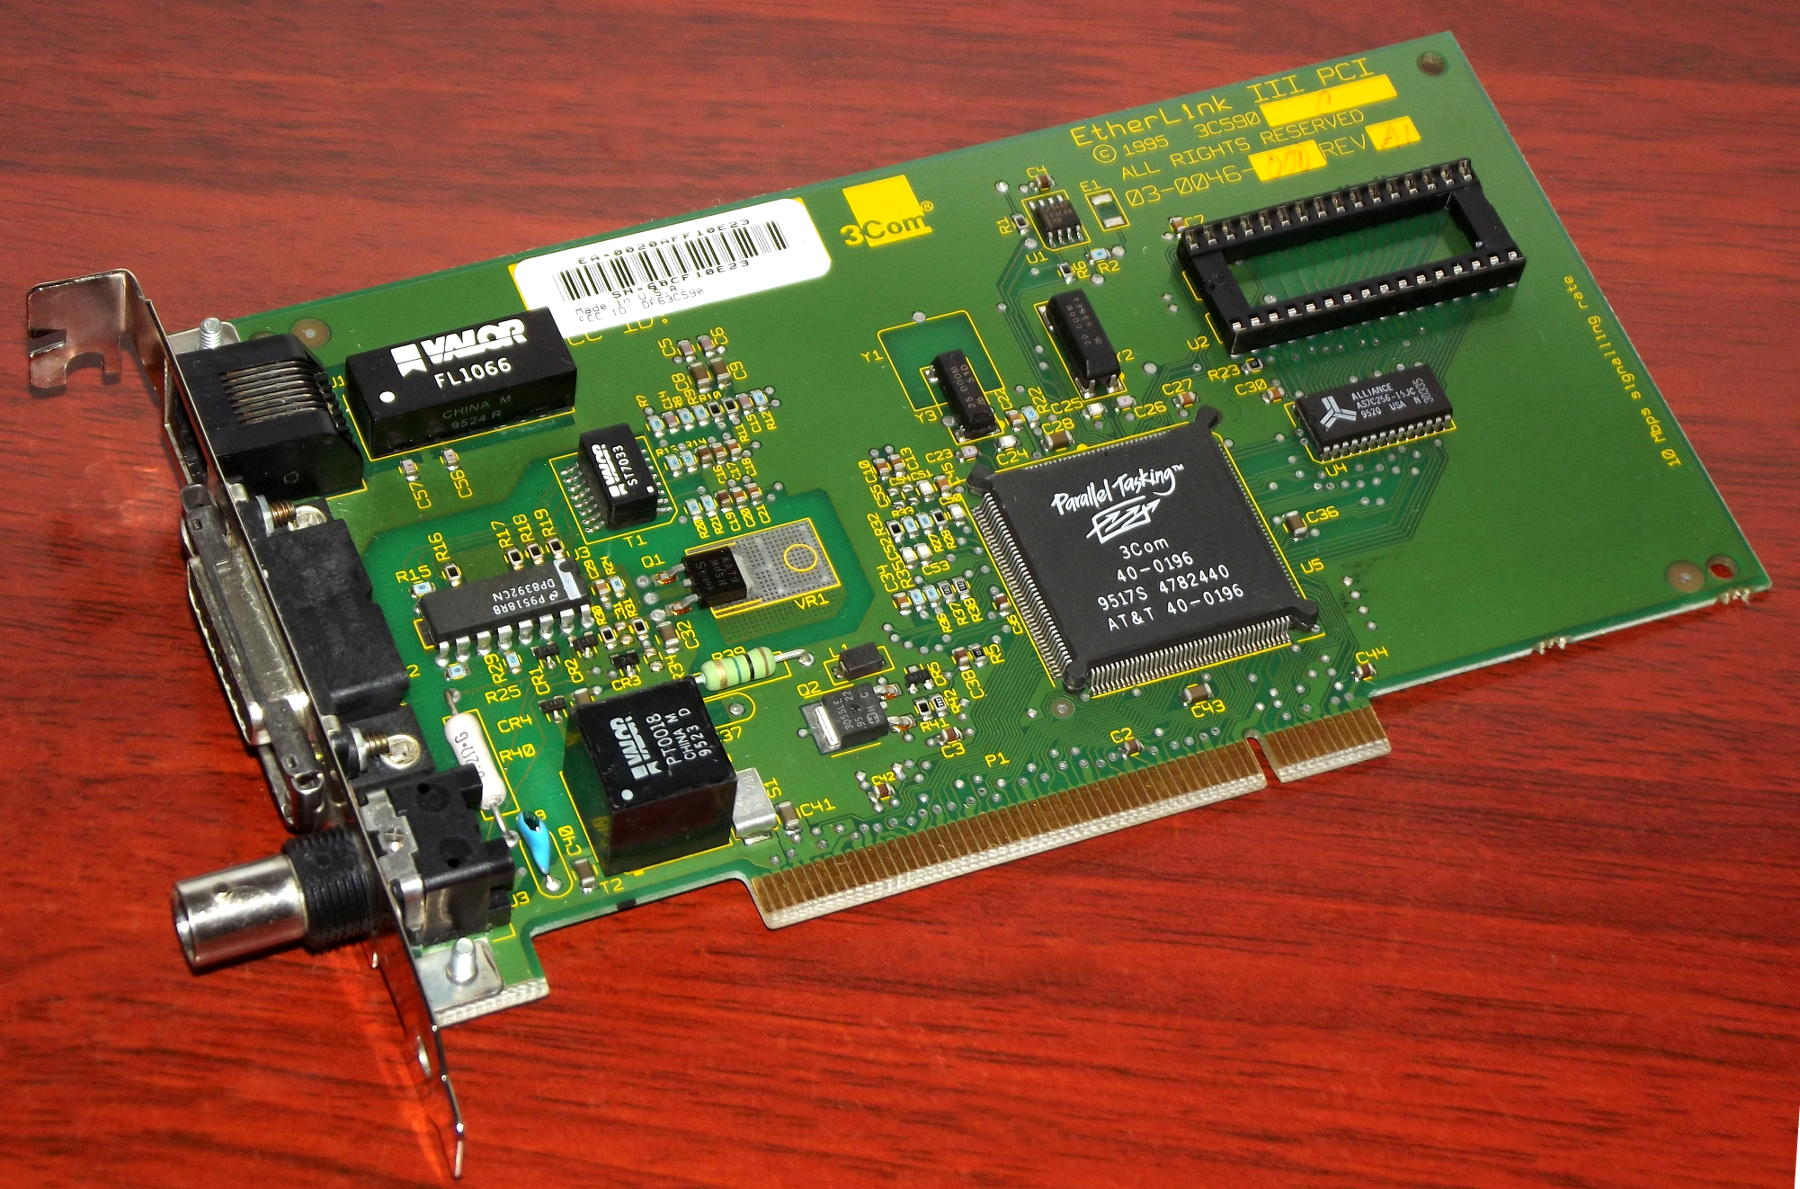 3Com Fast EtherLink 3C90x NIC Driver - TechSpot